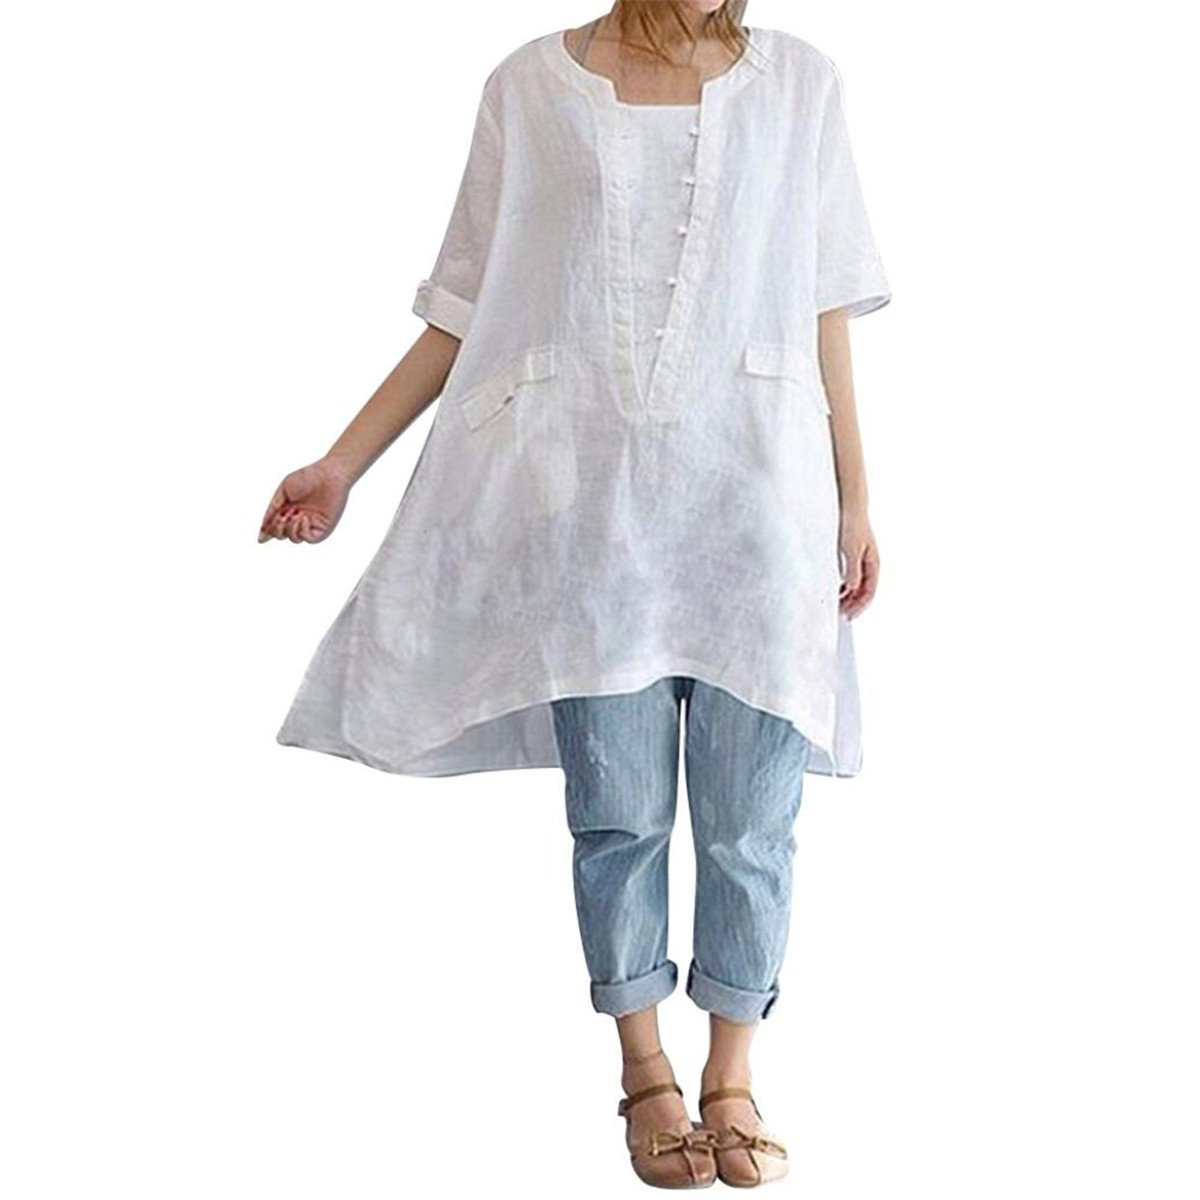 31458921e9424 About the product ❤️Street Fashion; Casual Loose Fit; Holiday----Long Sleeve  Thermal Henley T-Shirt Loose-fit Tunic Top Women Batwing Tops Casual Long  ...